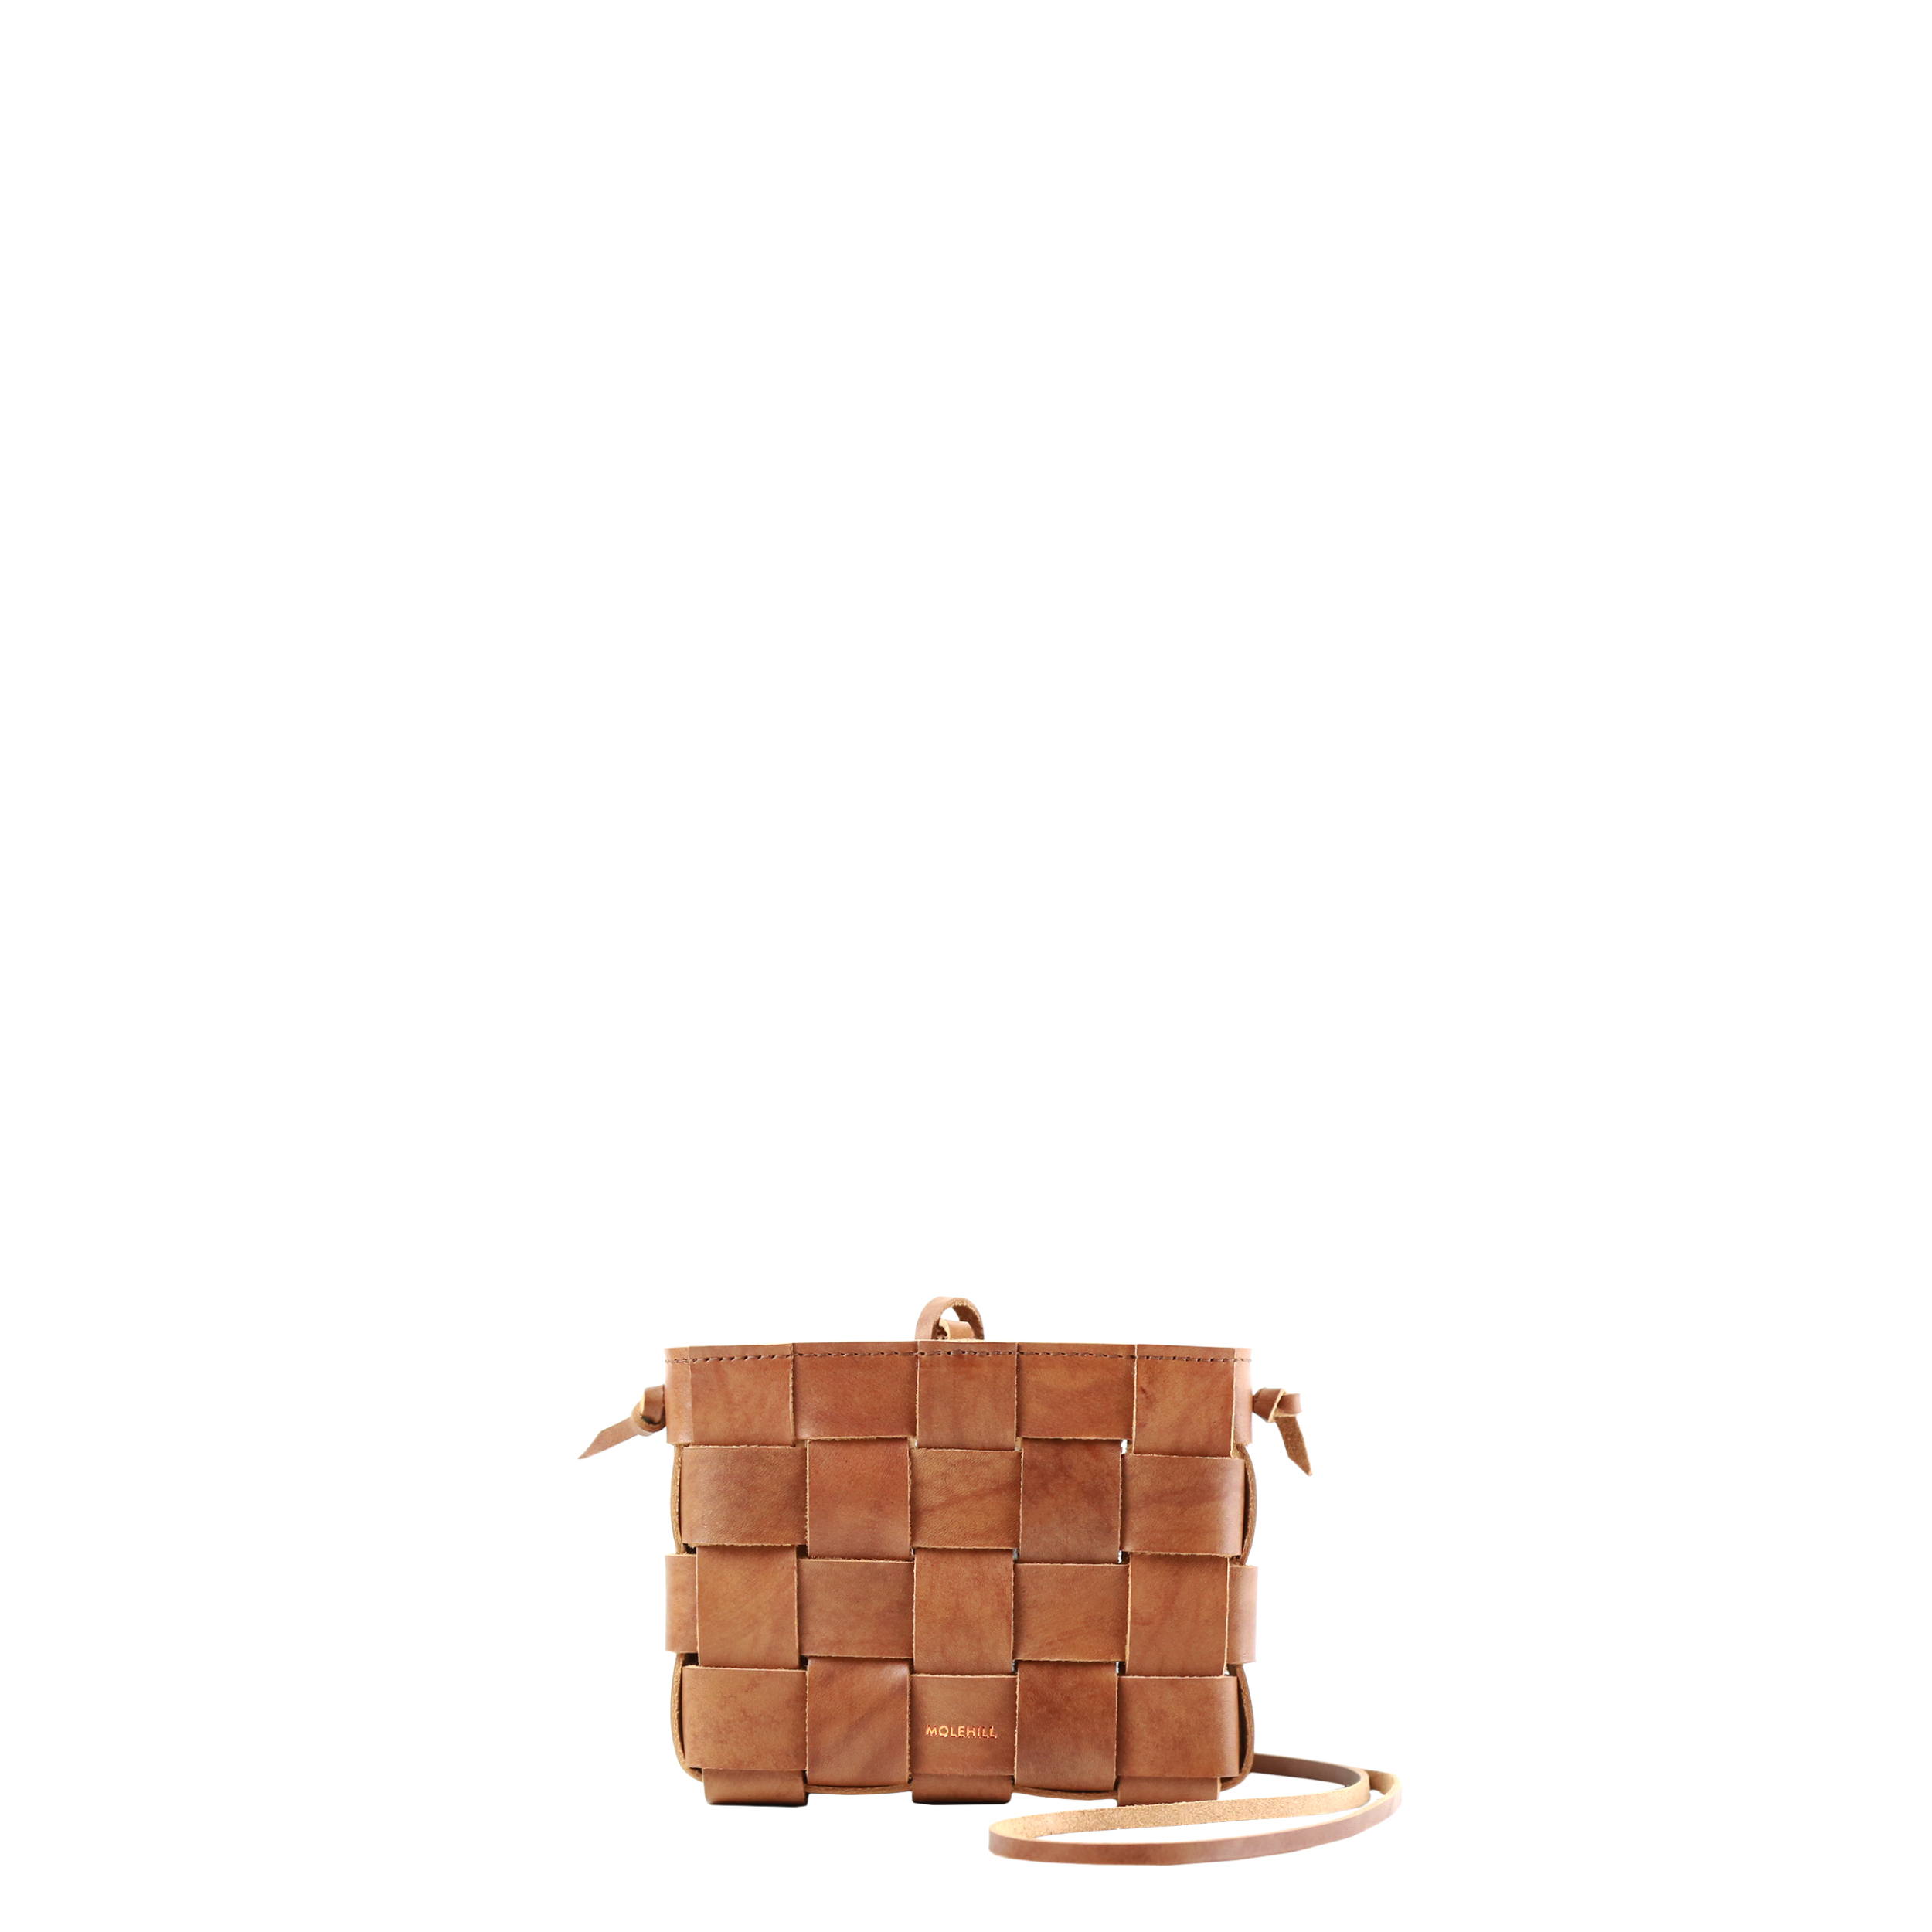 Pane Mini Crossbody Woven Bag Wild-1